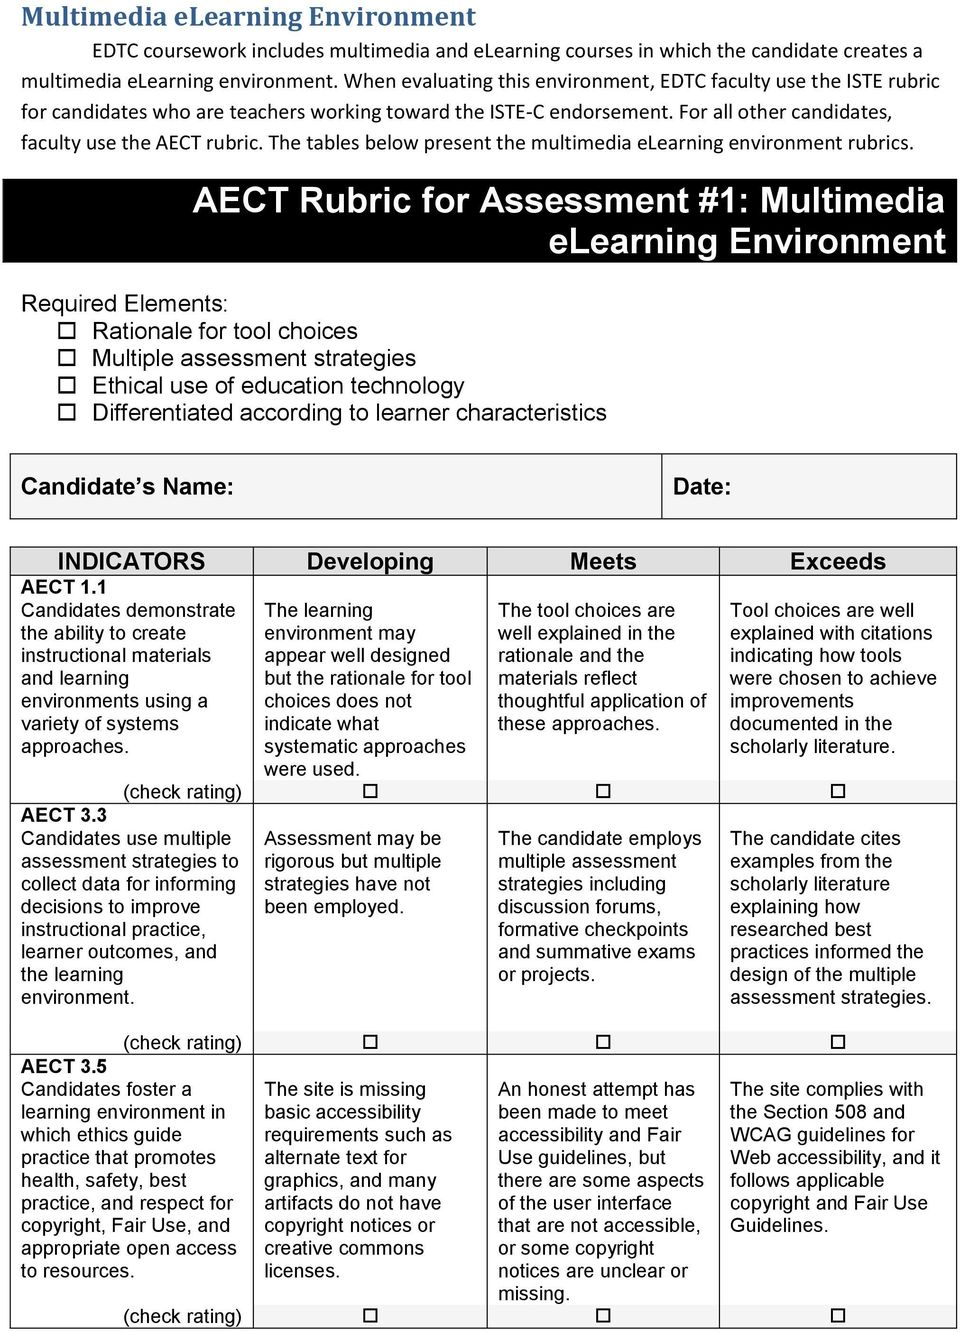 The tables below present the multimedia elearning environment rubrics.